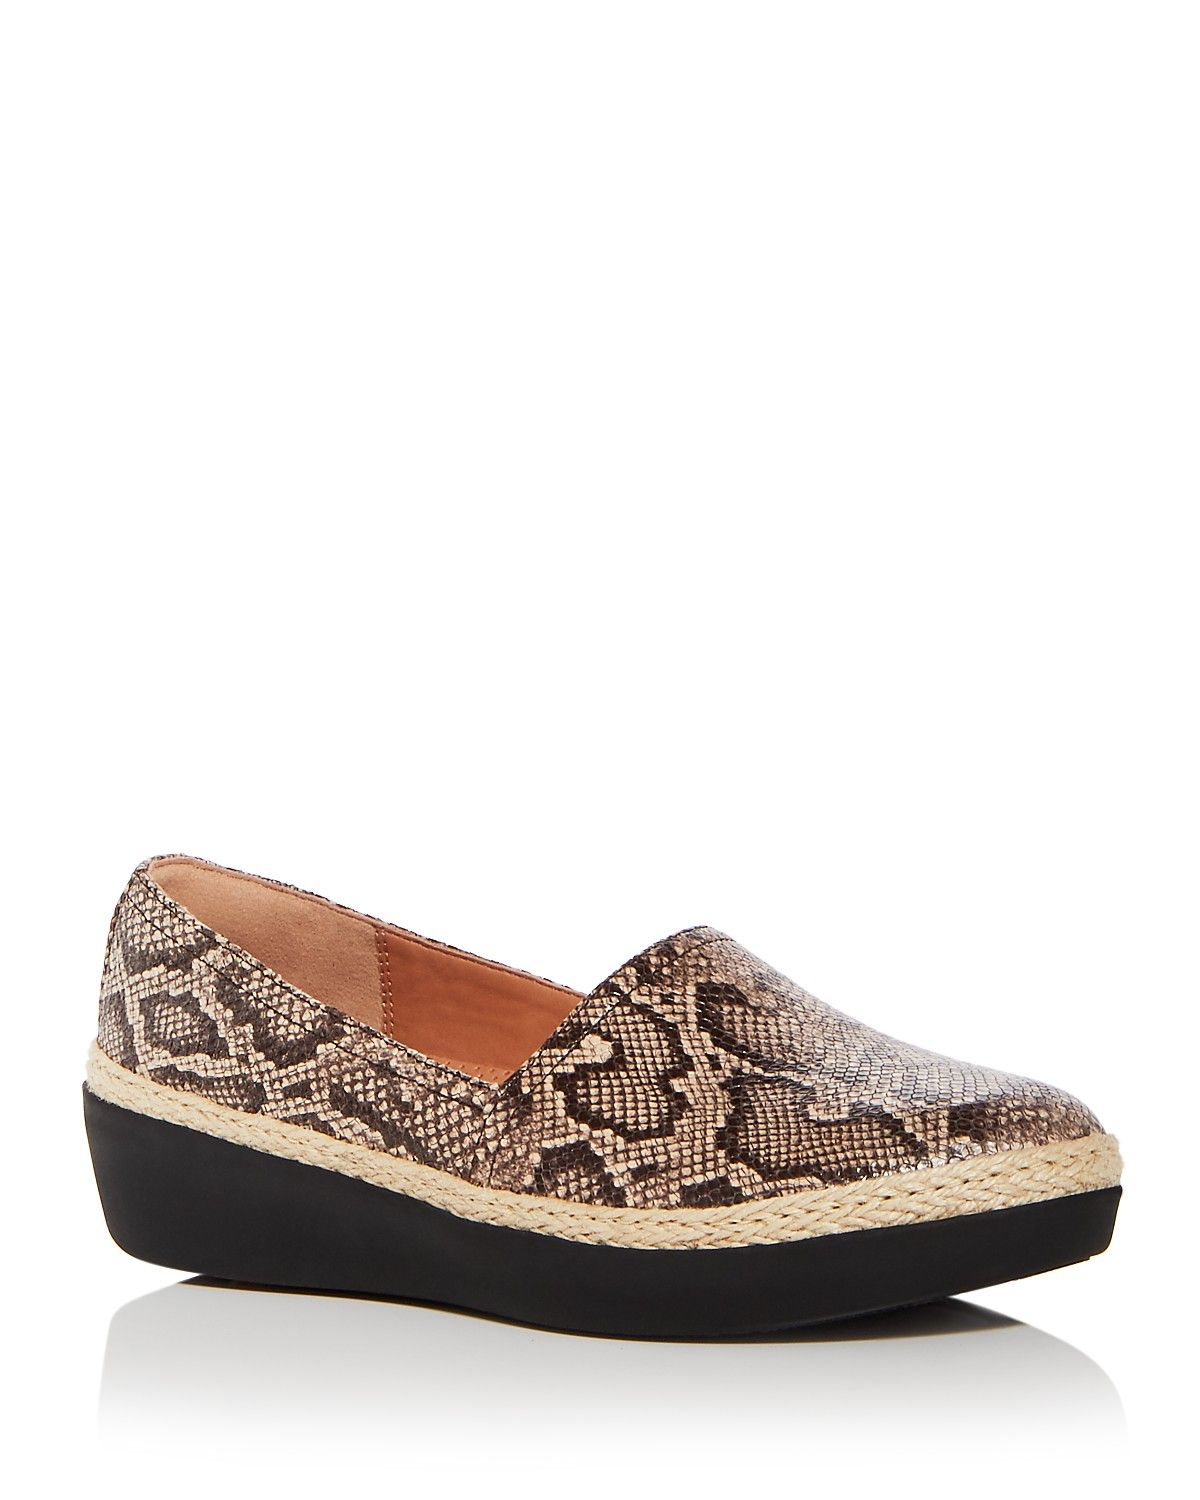 3dcca67e118ecf FitFlop Women s Casa Snake Embossed Leather Wedge Platform Loafers ...